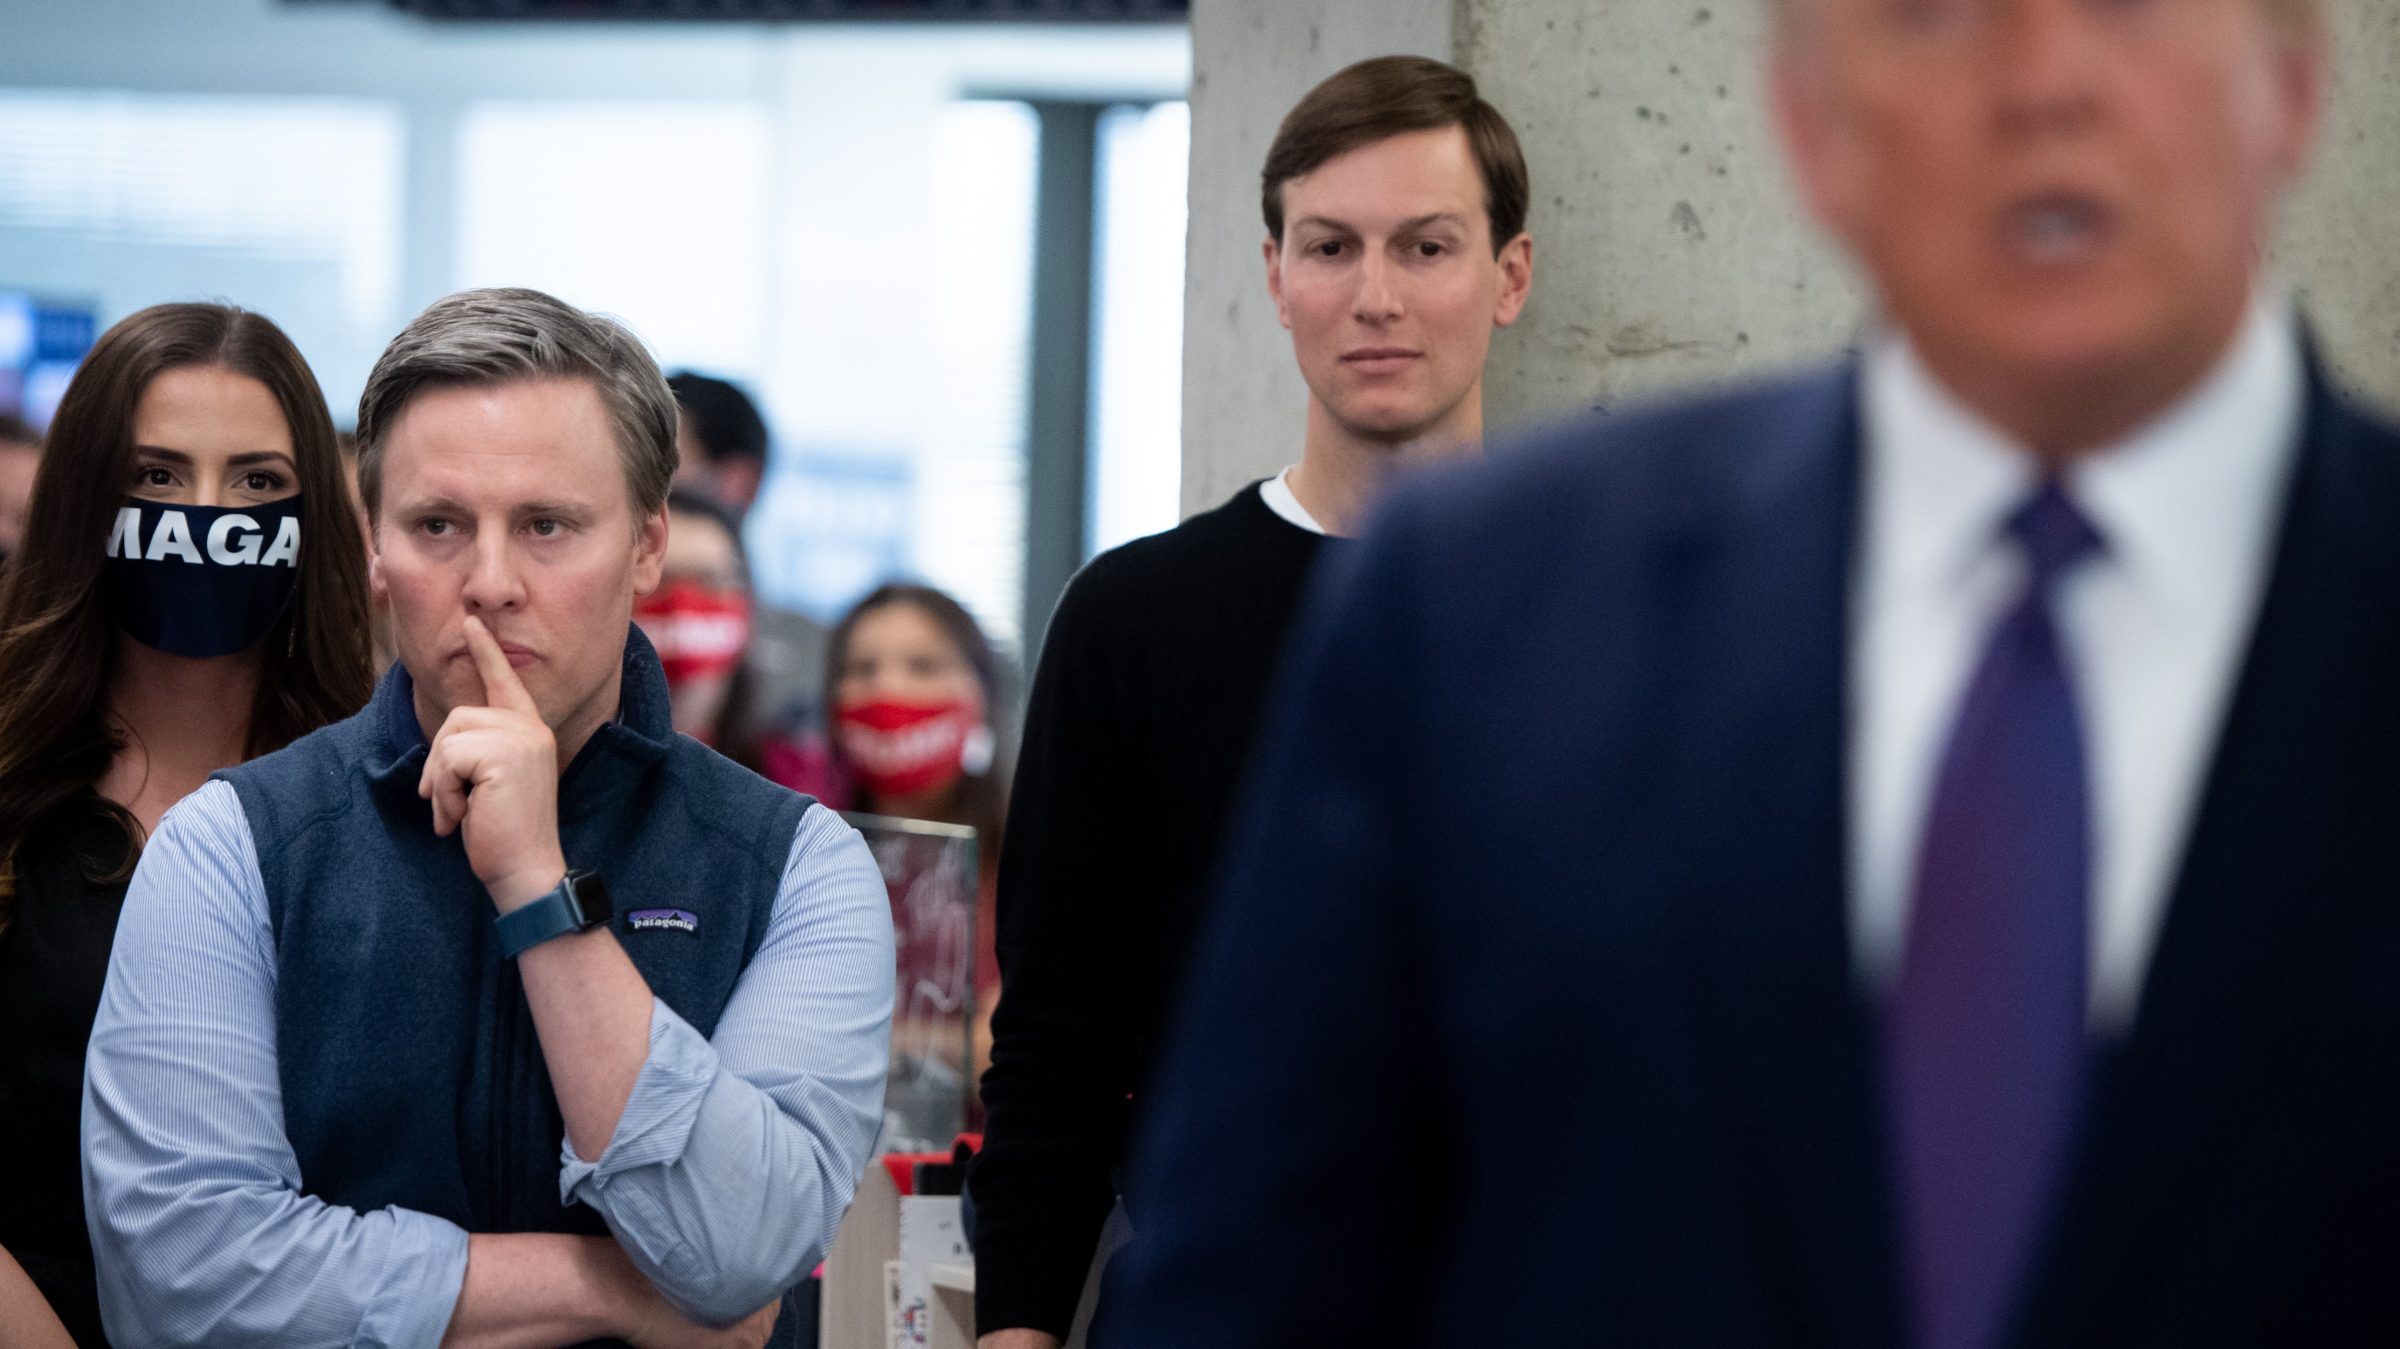 Trump campaign manager Bill Stepien and son-in-law Jared Kushner behind Donald Trump